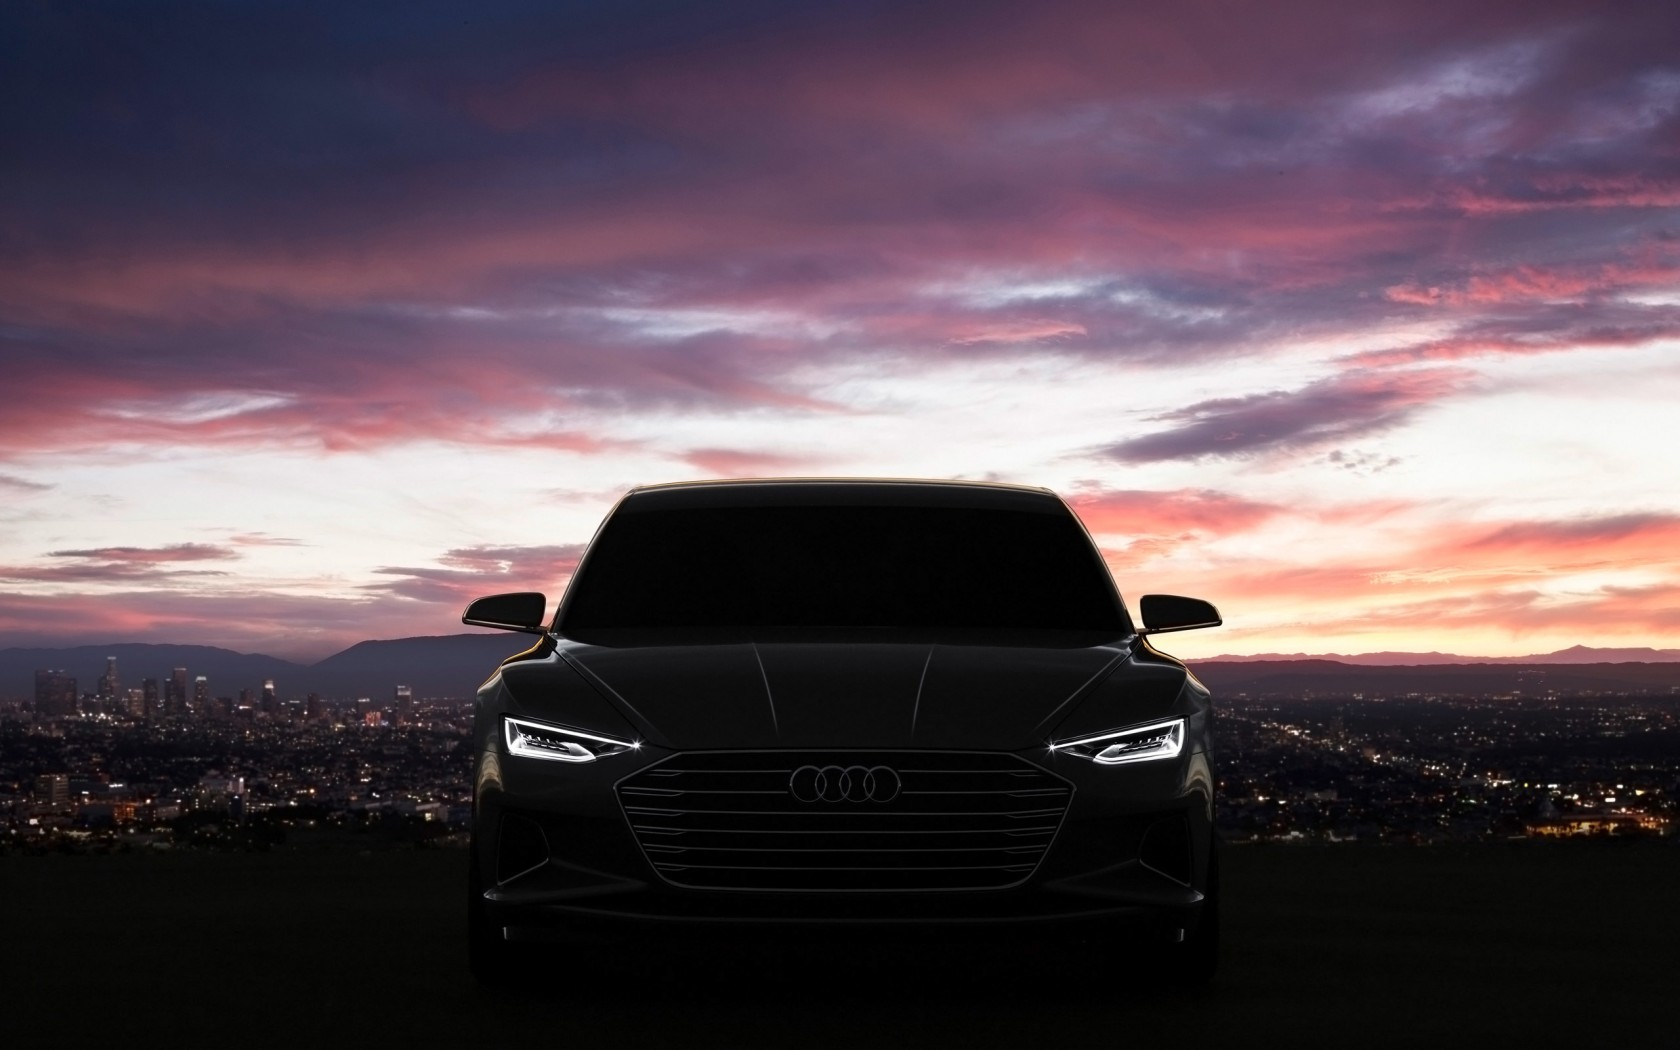 Hd Car Wallpapers For Android Tablets 2014 Audi Prologue Concept Wallpaper Hd Car Wallpapers